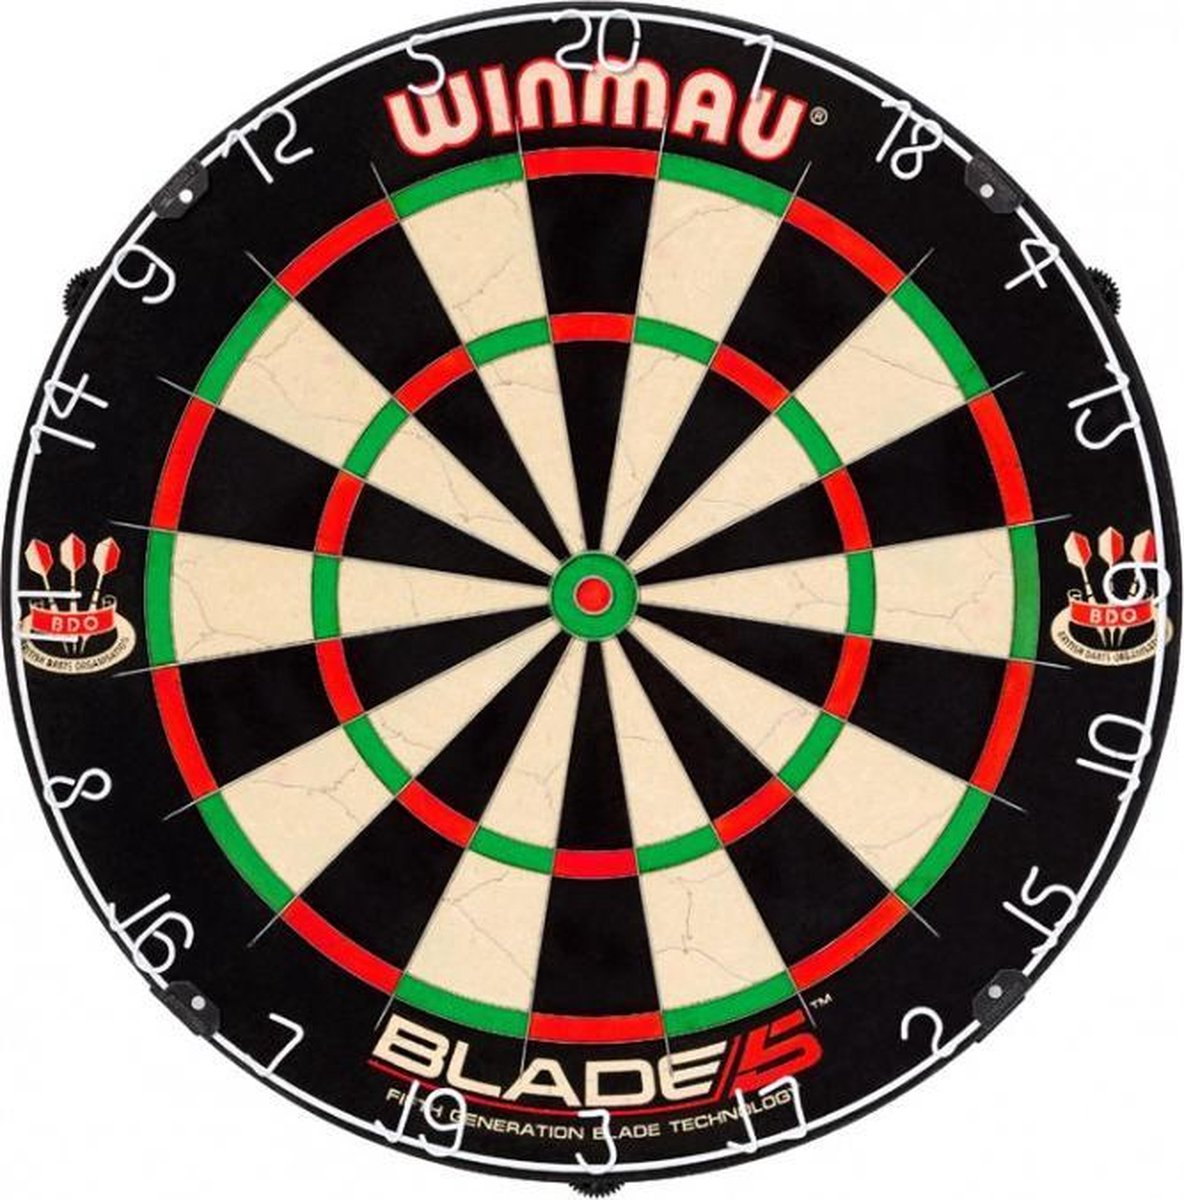 winmau blade 5 incl. rubberen surround ring blauw en scorebord